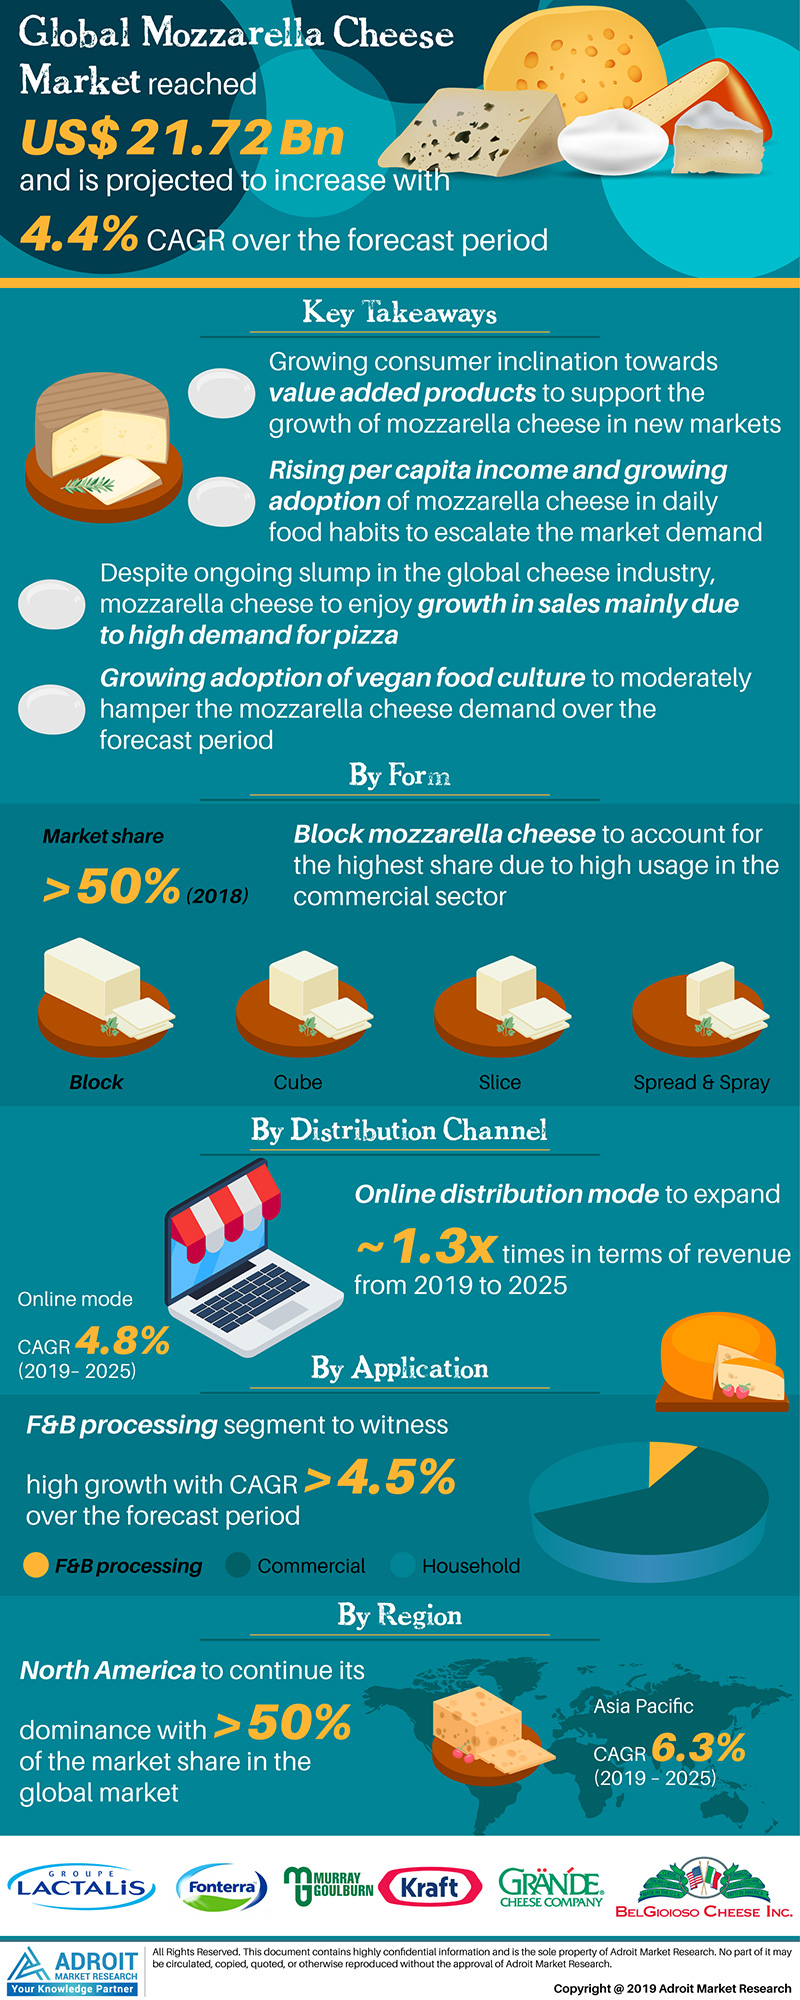 Global Mozzarella Cheese Market Size 2017 By Product Form, Distribution Channel, Application, Region and Forecast 2019 to 2025